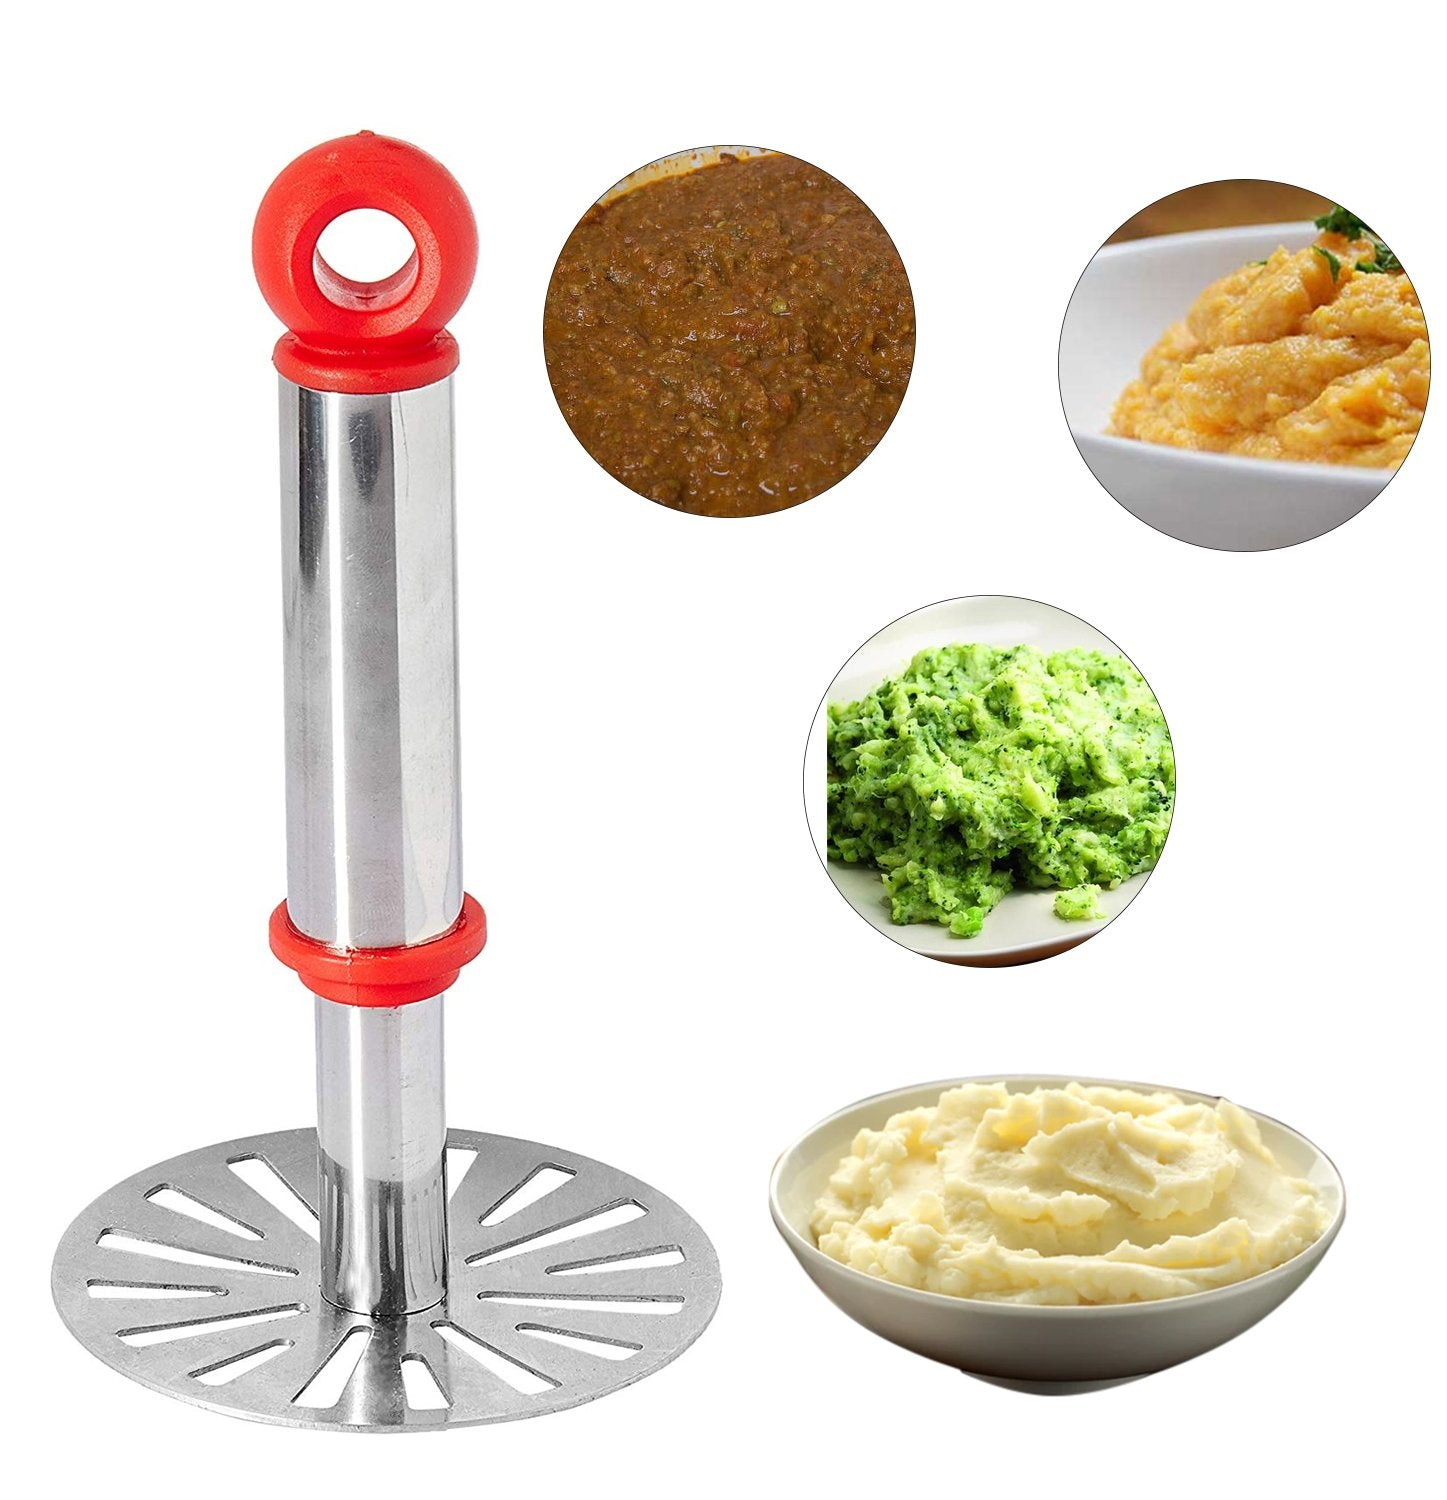 586 Stainless Steel Potato Masher, PauBhaji Masher